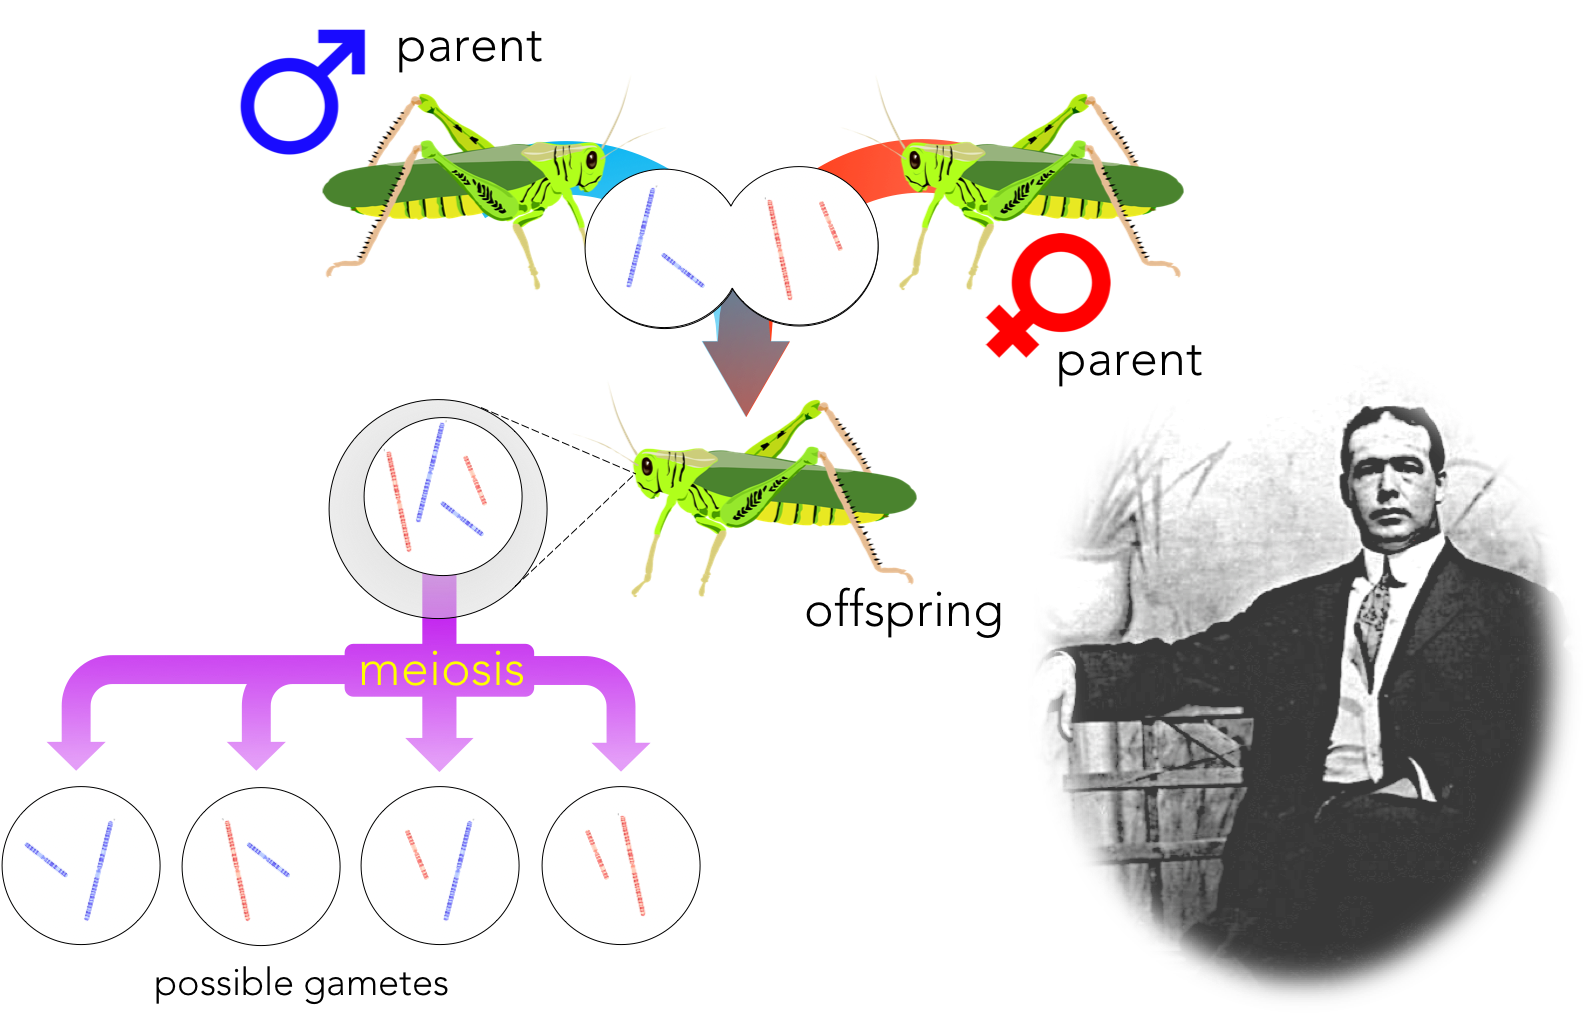 Figure 3. Walter Sutton discovered the importance of chromosomes in explaining Mendel's principles of segregation and independent assortment.